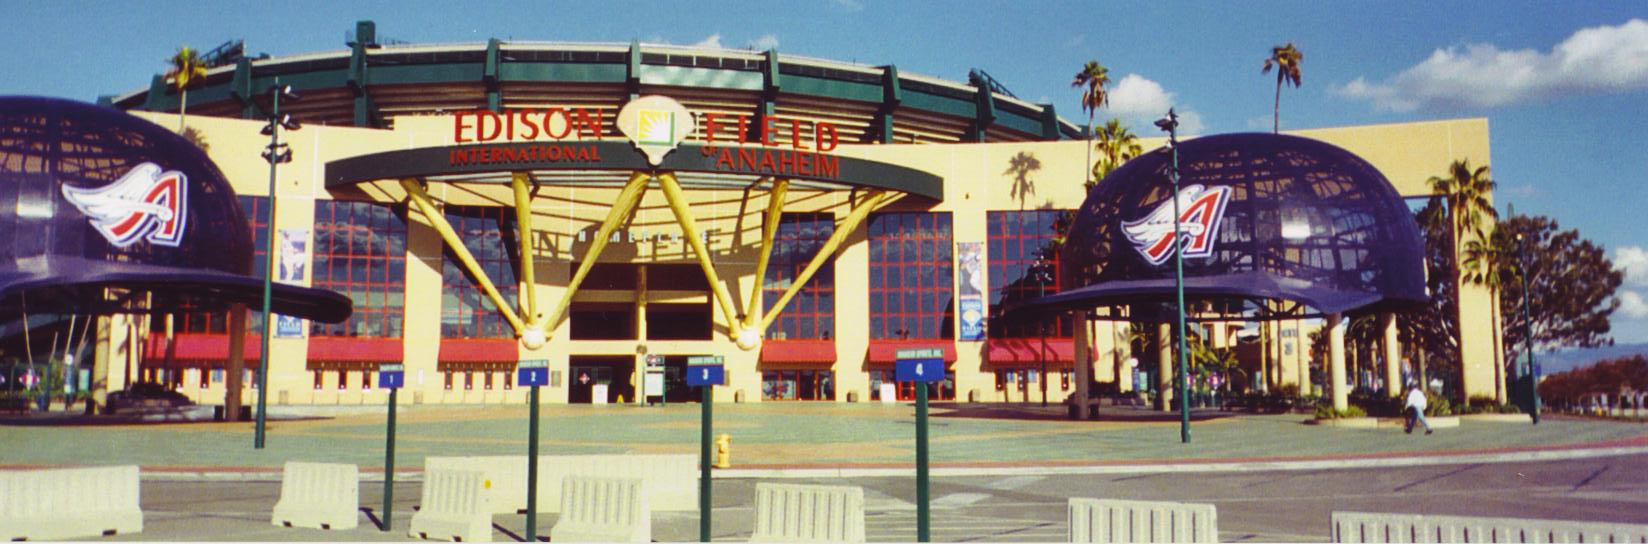 Edison International Field - Anaheim, California